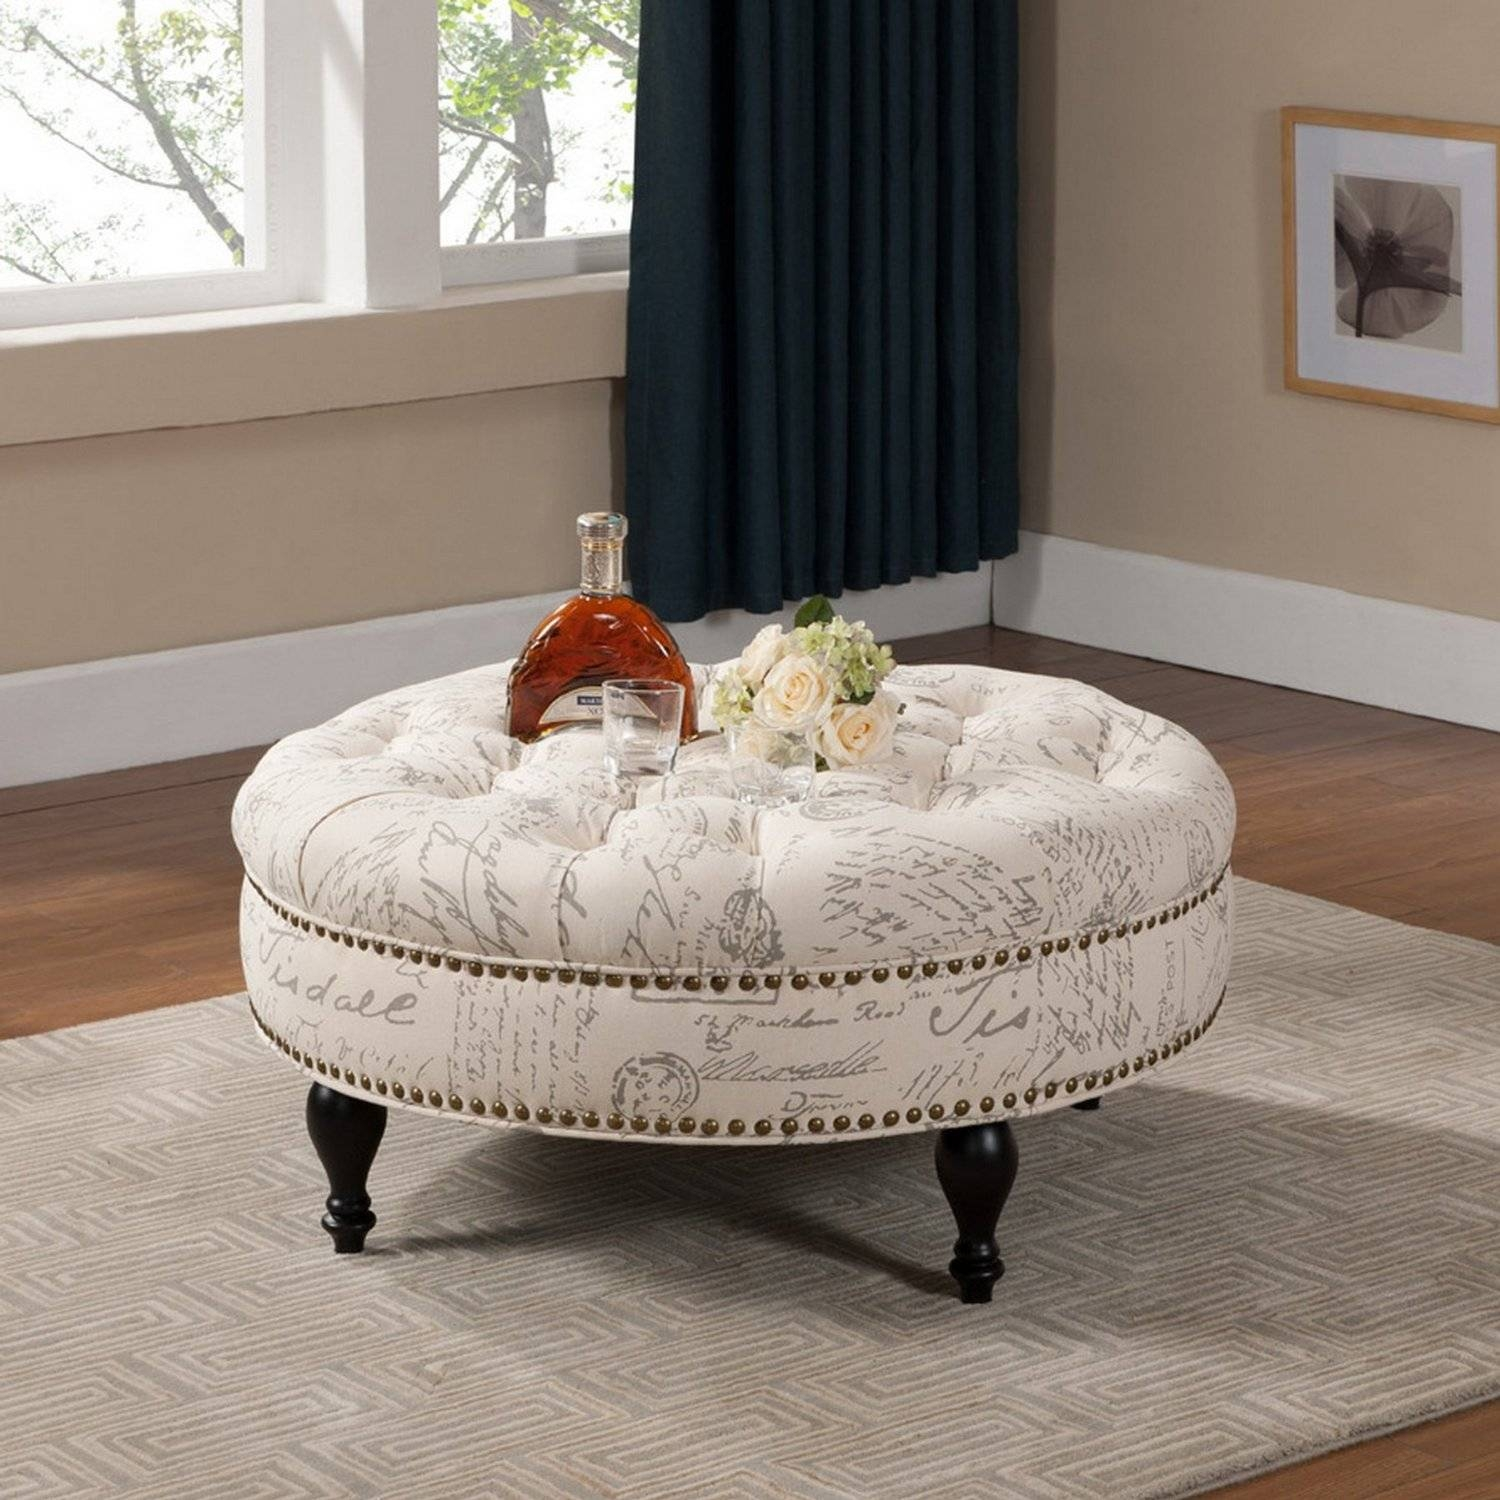 Furniture: Luxury Round Tufted Ottoman For Home Furniture Ideas throughout Purple Ottoman Coffee Tables (Image 11 of 30)